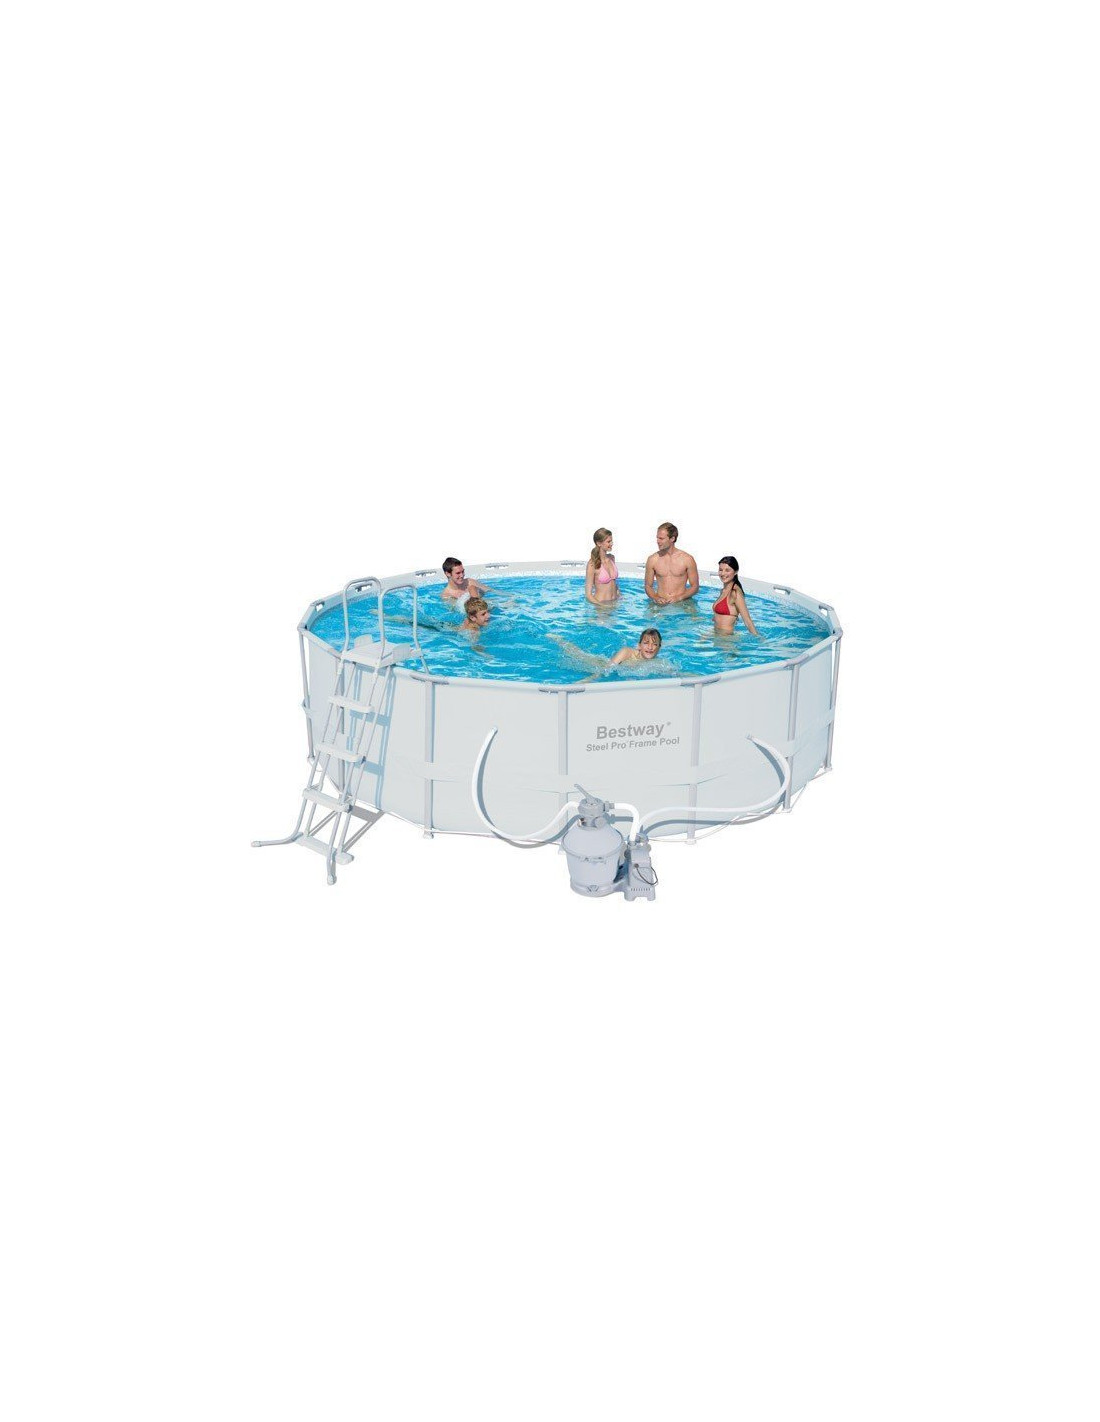 Piscine tubulaire bestway ronde couleur grise filtration for Piscine tubulaire grise